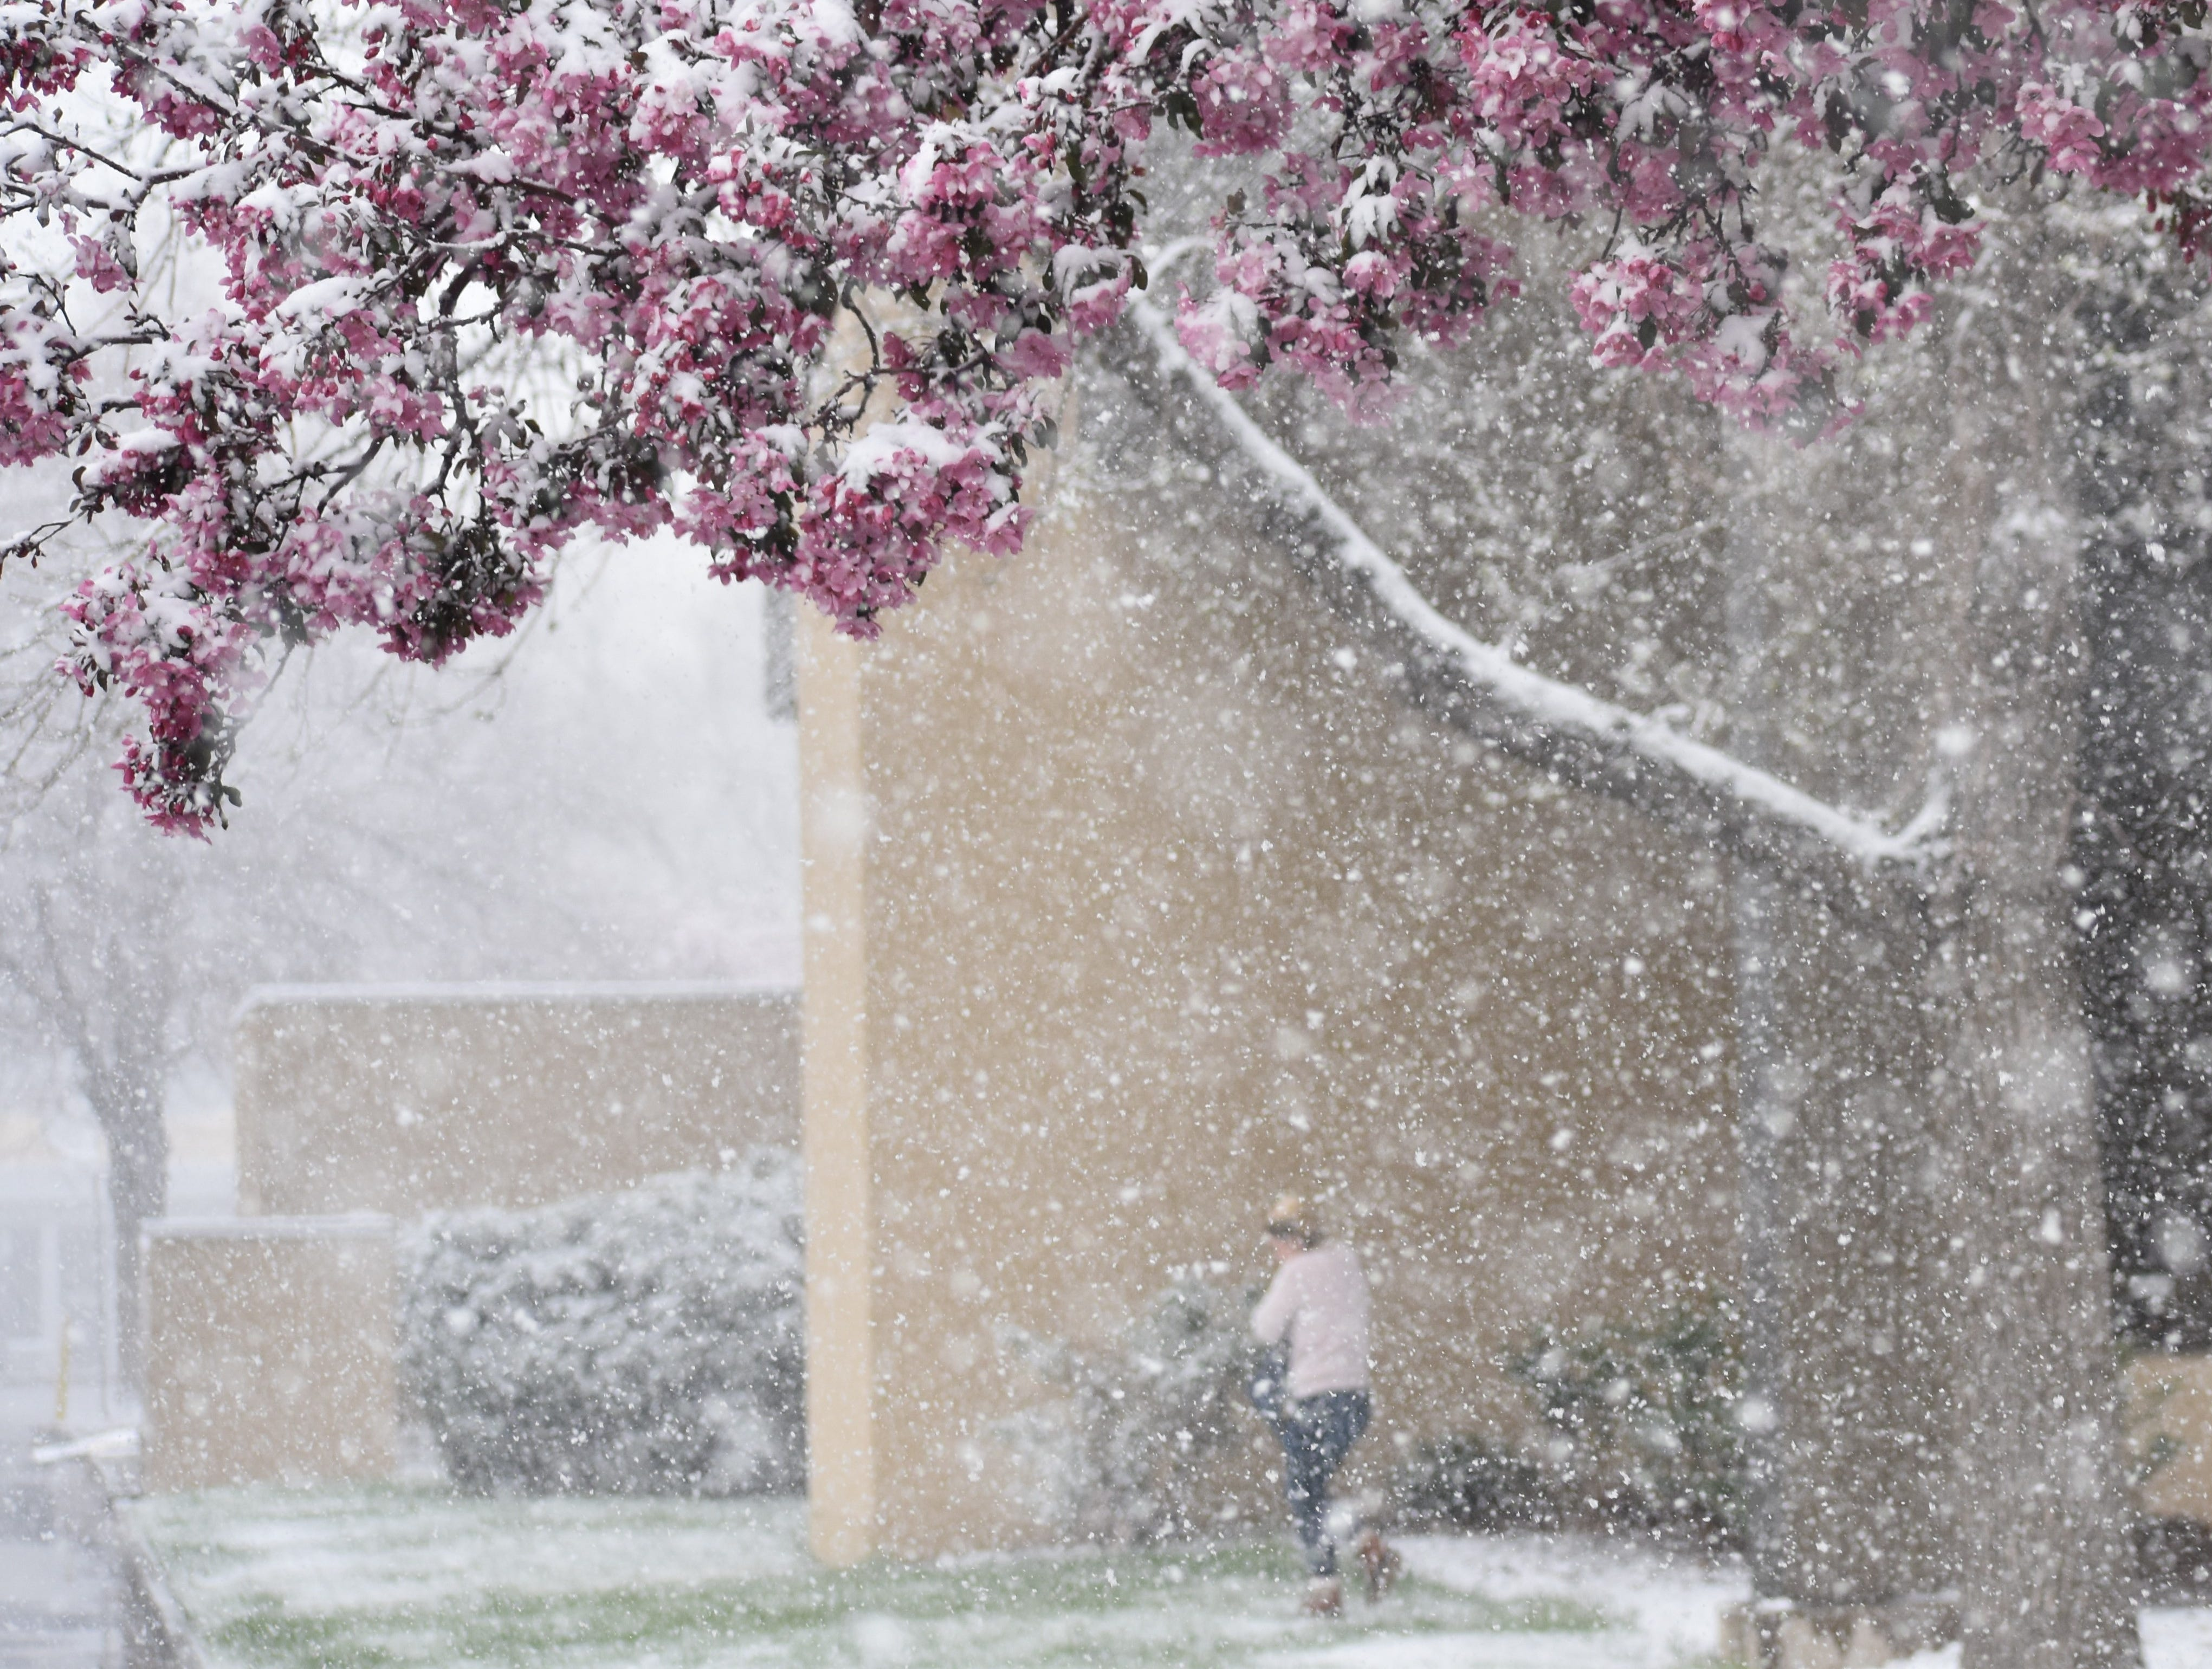 Snow falls from a crabapple tree during Monday's snowstorm in Fort Collins.